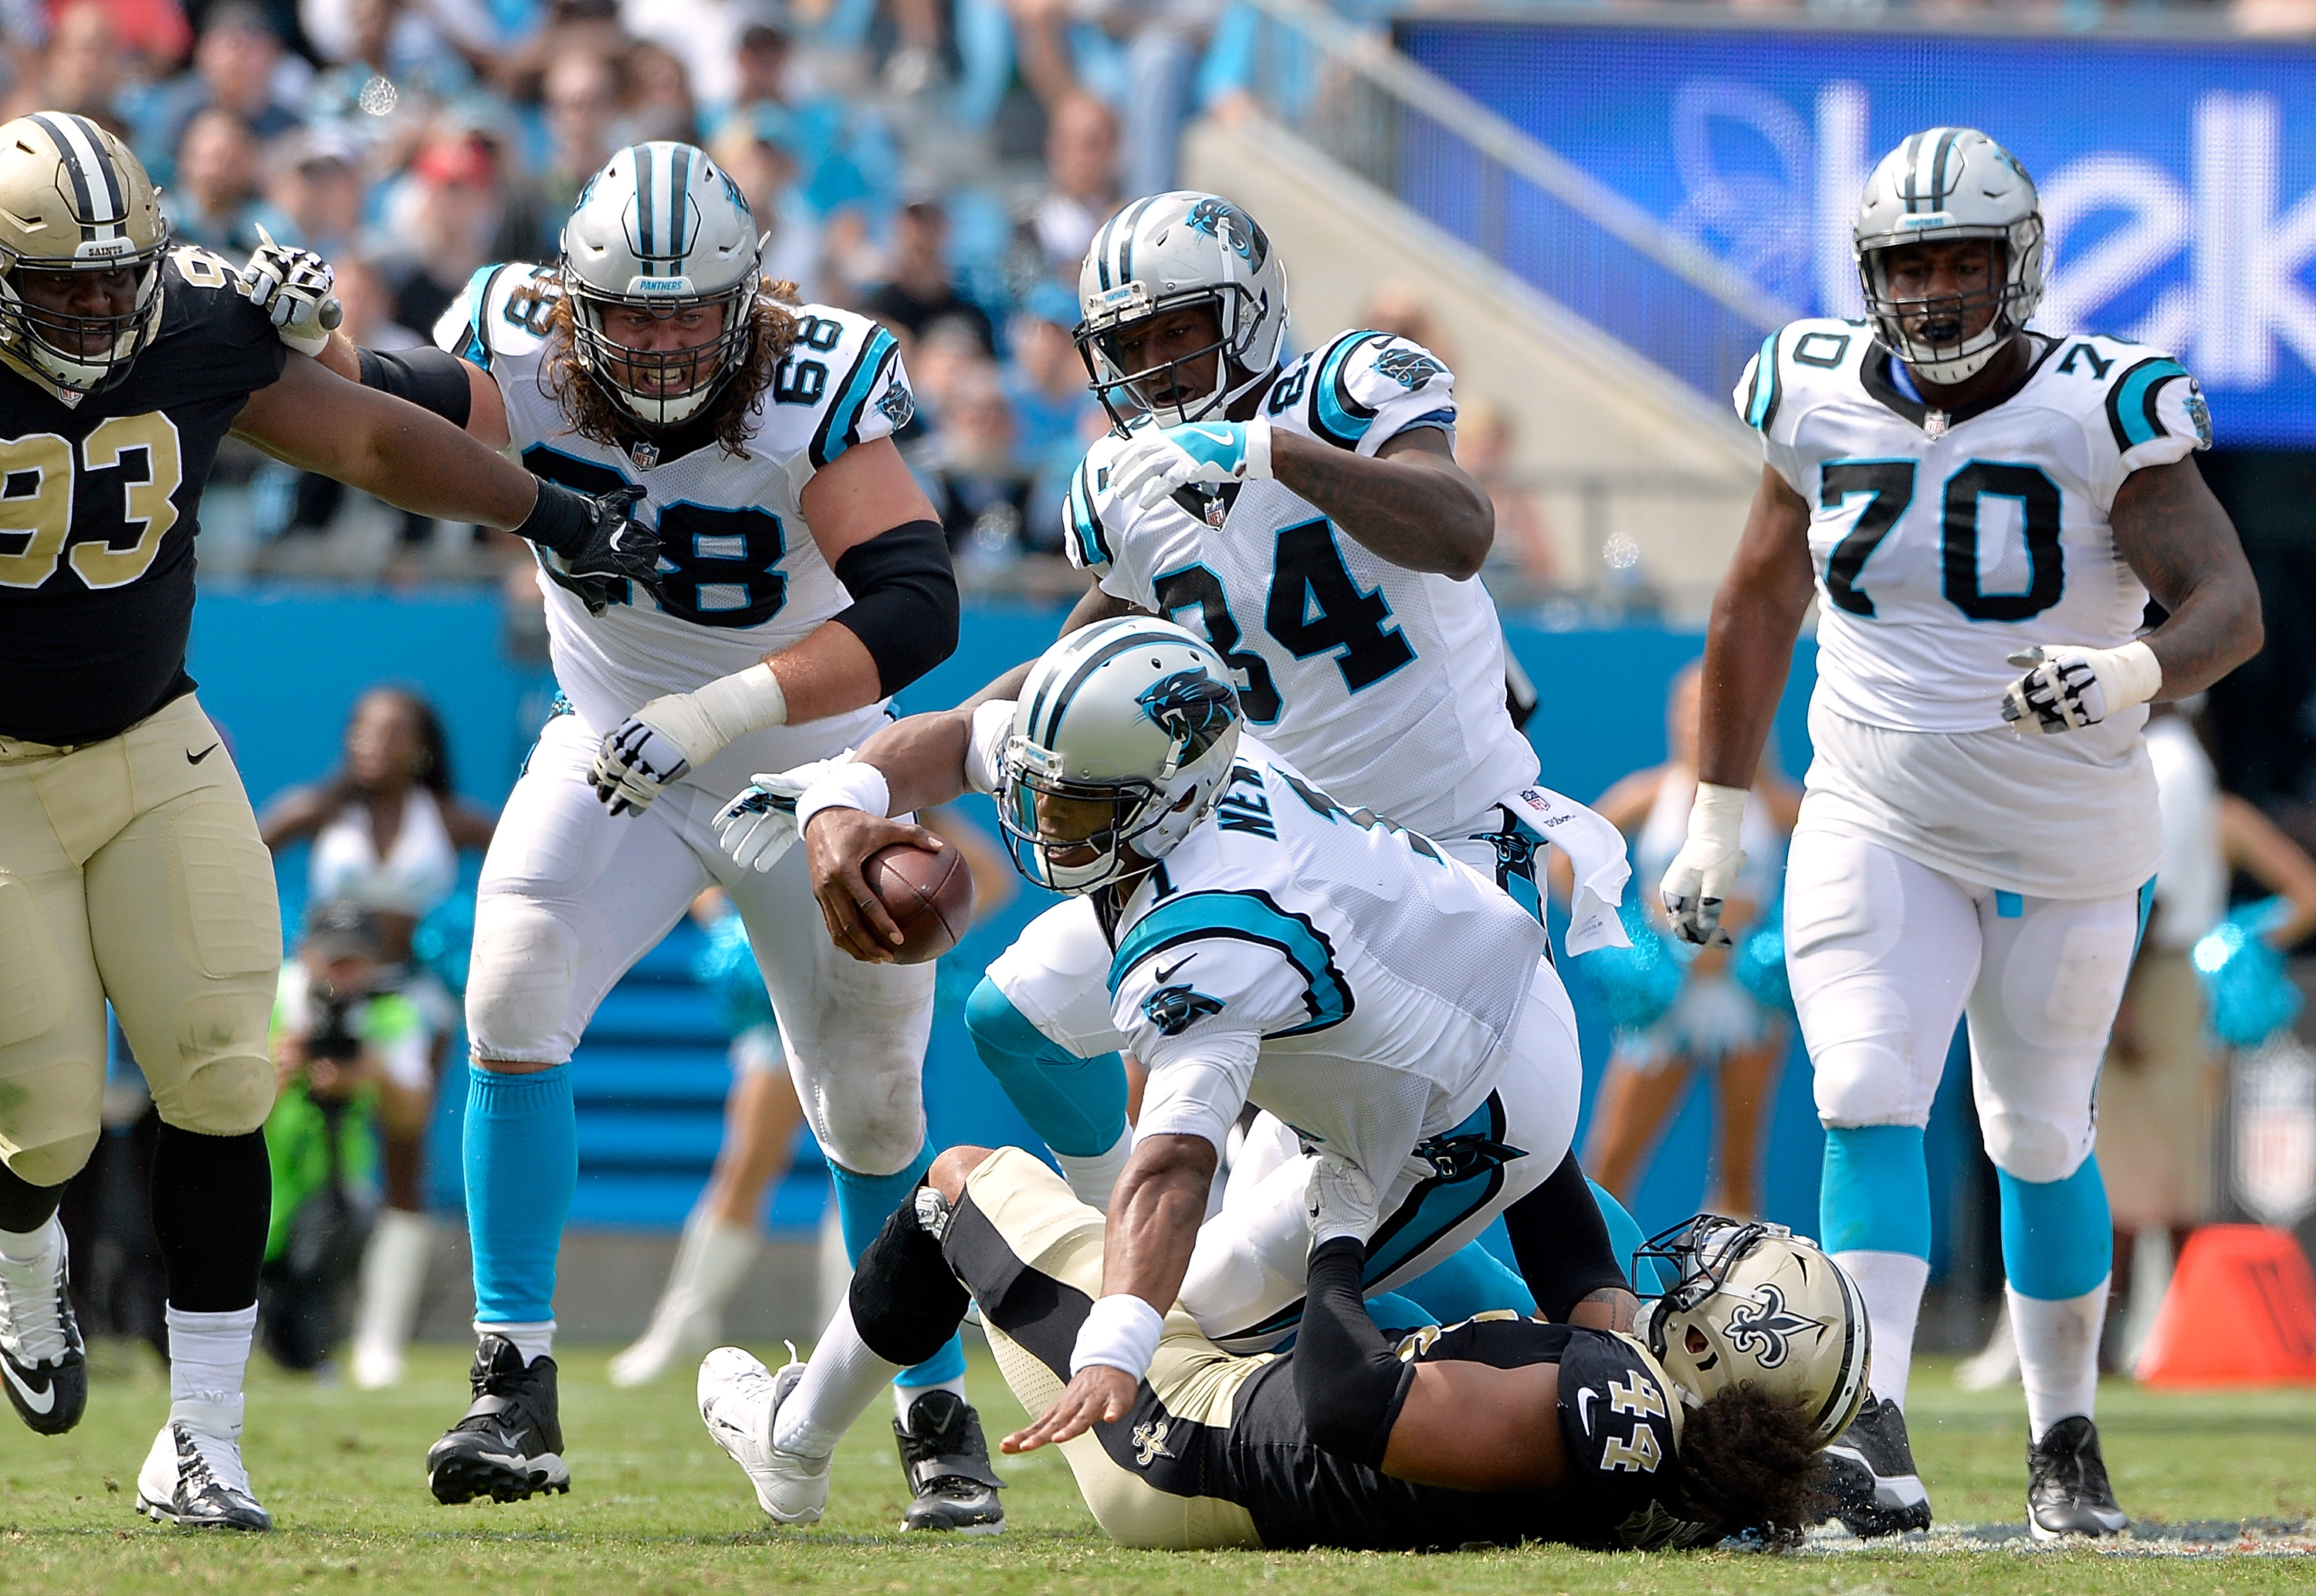 What Are The Panthers Score >> Carolina Panthers: Key takeaways from their Week 3 loss